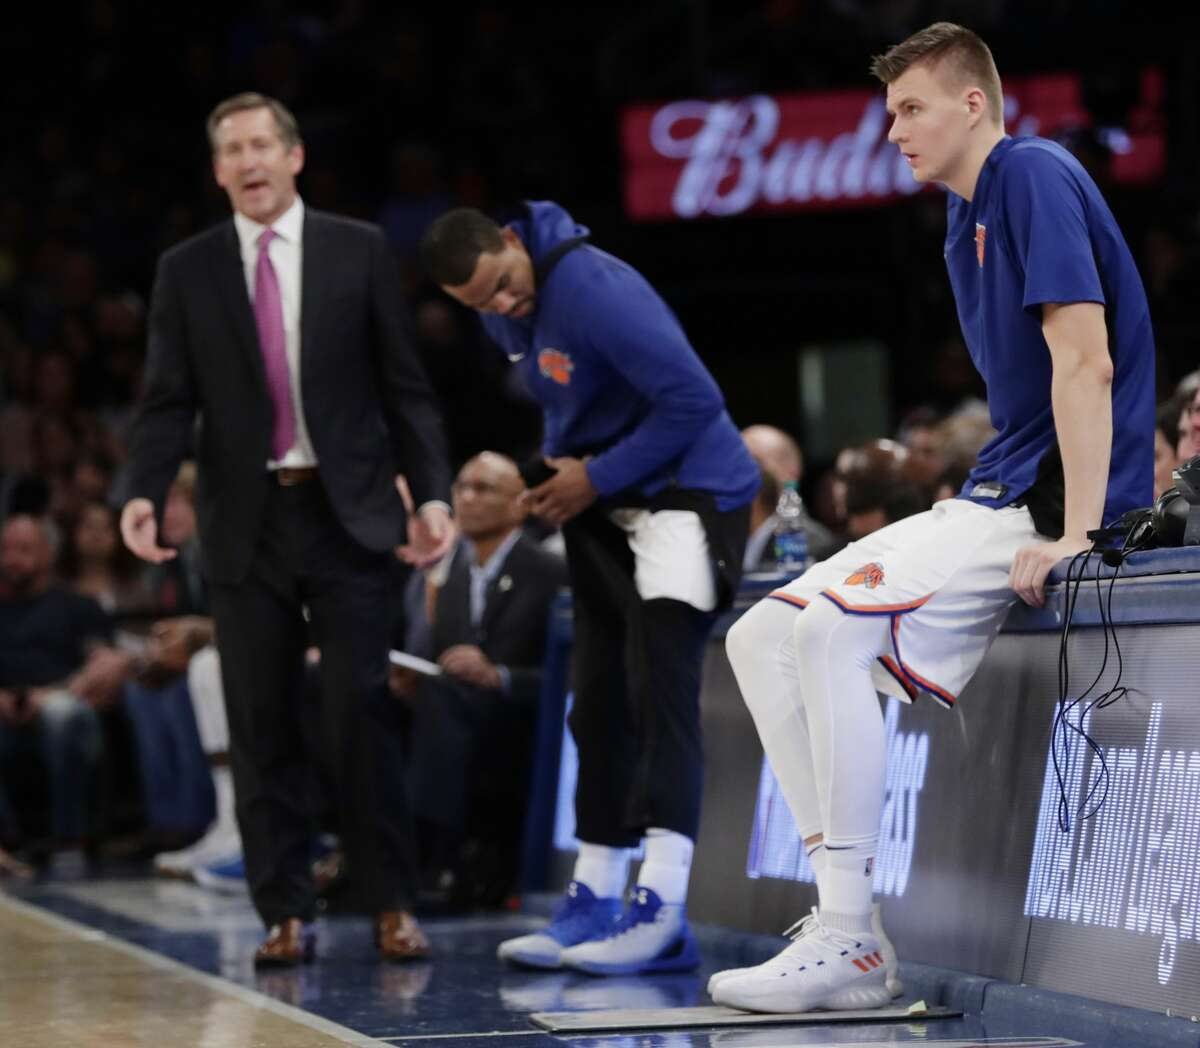 New York Knicks' Kristaps Porzingis, waits to check back into the game during the second half of an NBA basketball game against the Houston Rockets Wednesday, Nov. 1, 2017, in New York. The Rockets won 119-97. (AP Photo/Frank Franklin II)